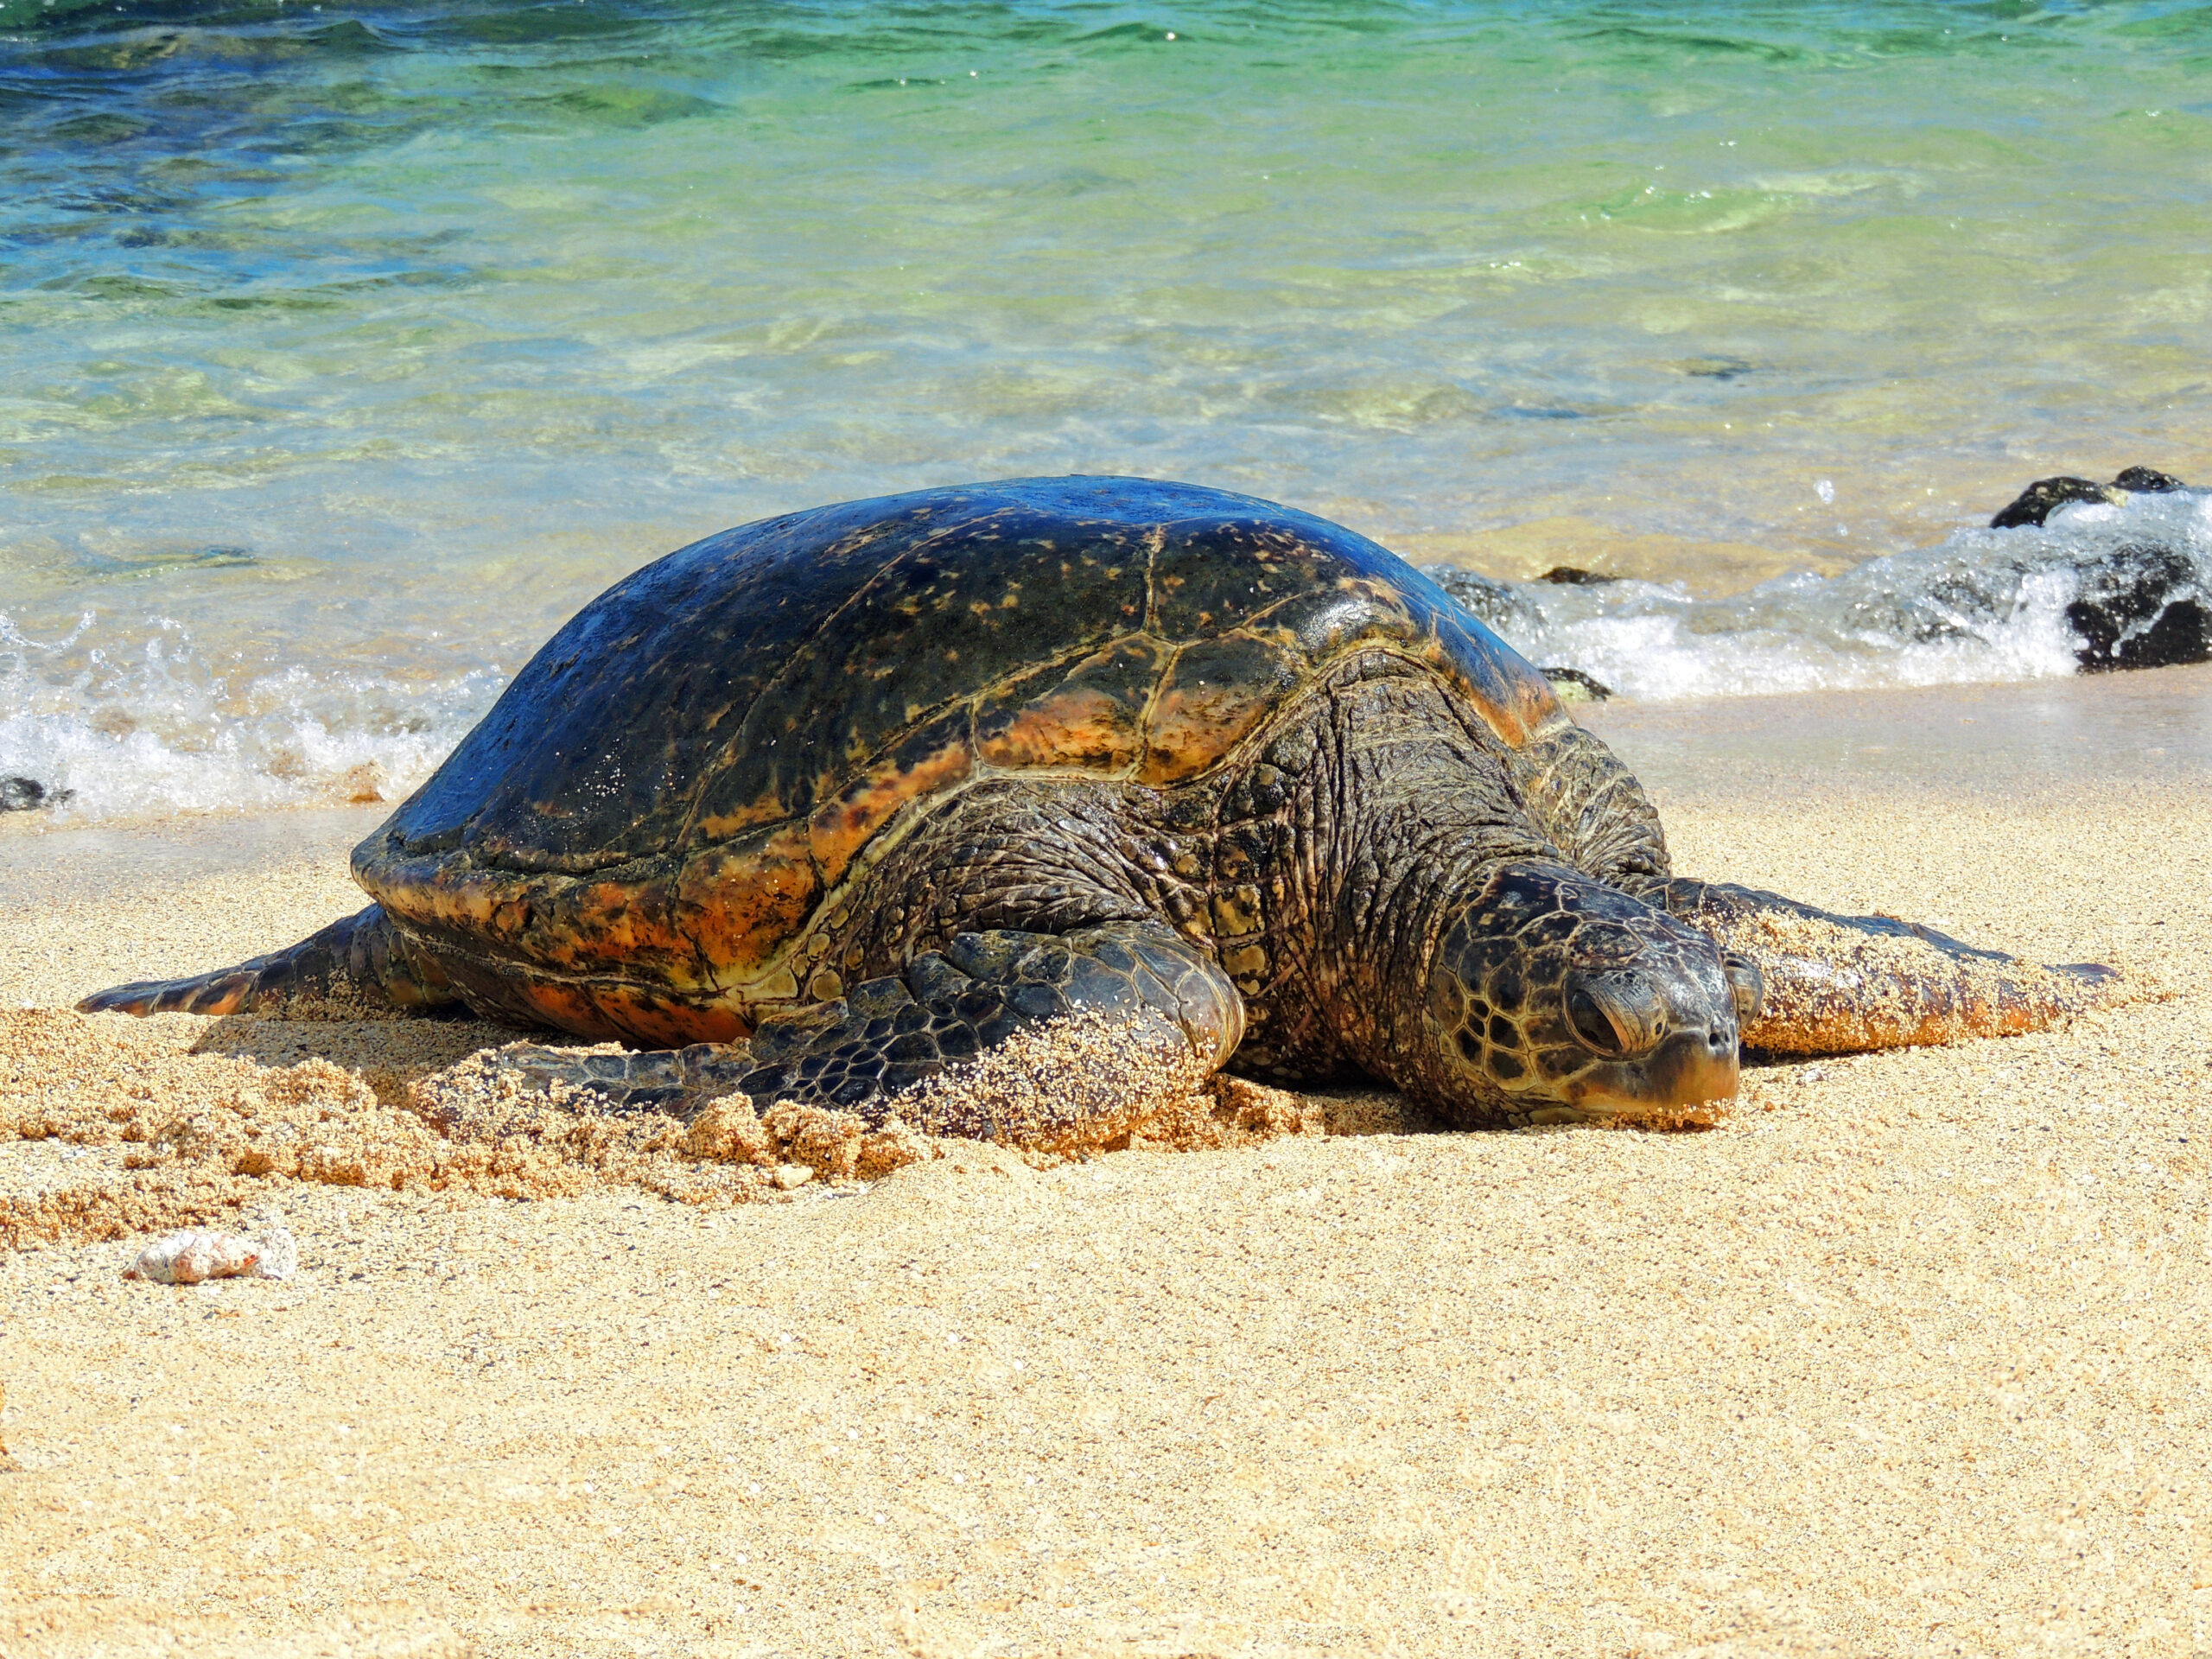 Conservationists Raise Alarm Over Hawaiian Green Sea Turtle Nesting Numbers